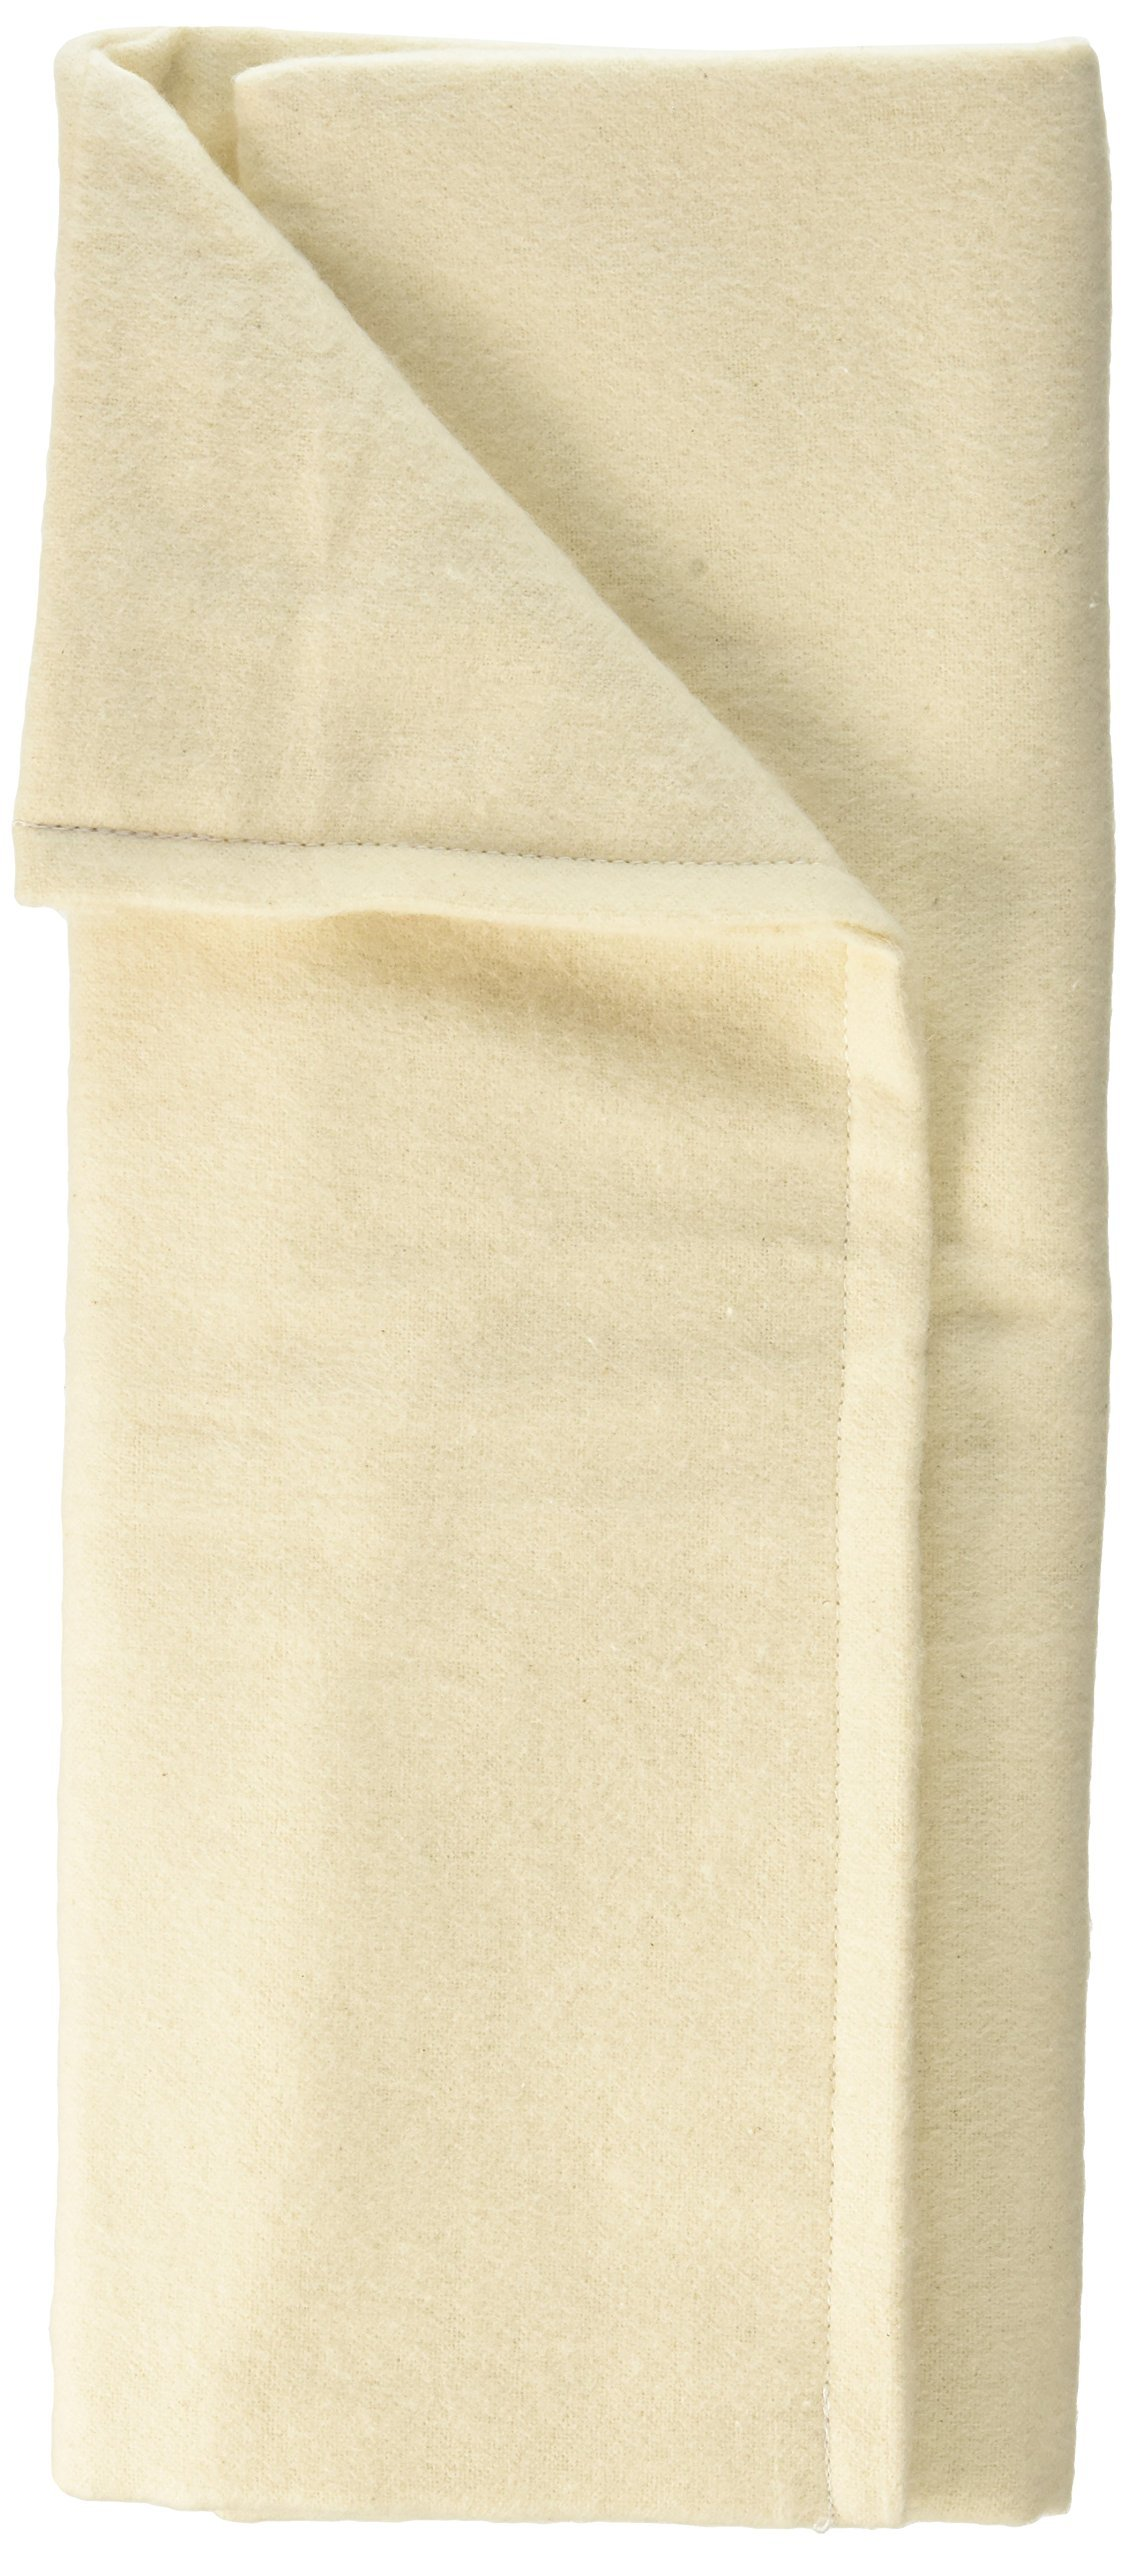 Heritage Store Cotton Flannel 13 Inches X 15 Inches